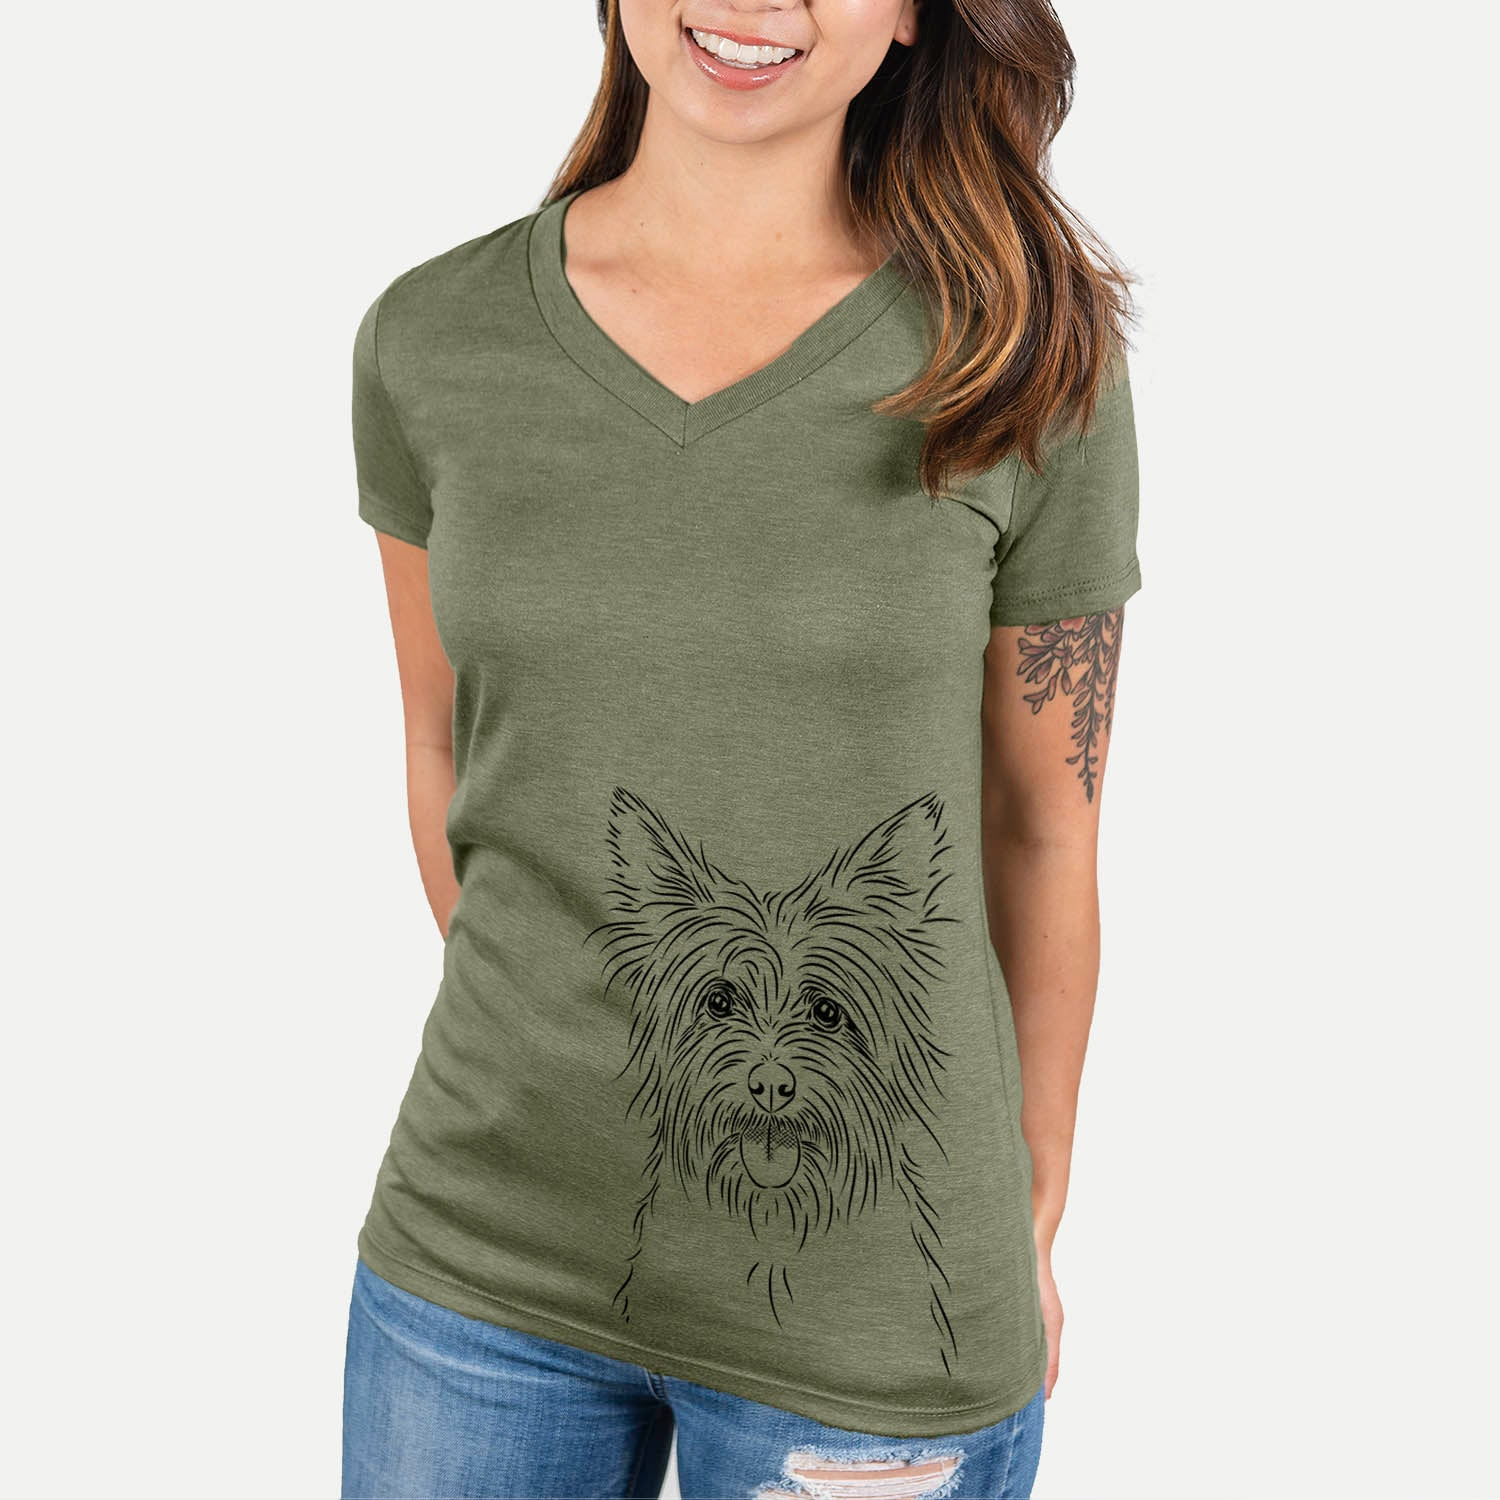 Calum the Cairn Terrier - Women's Modern Fit V-neck Shirt